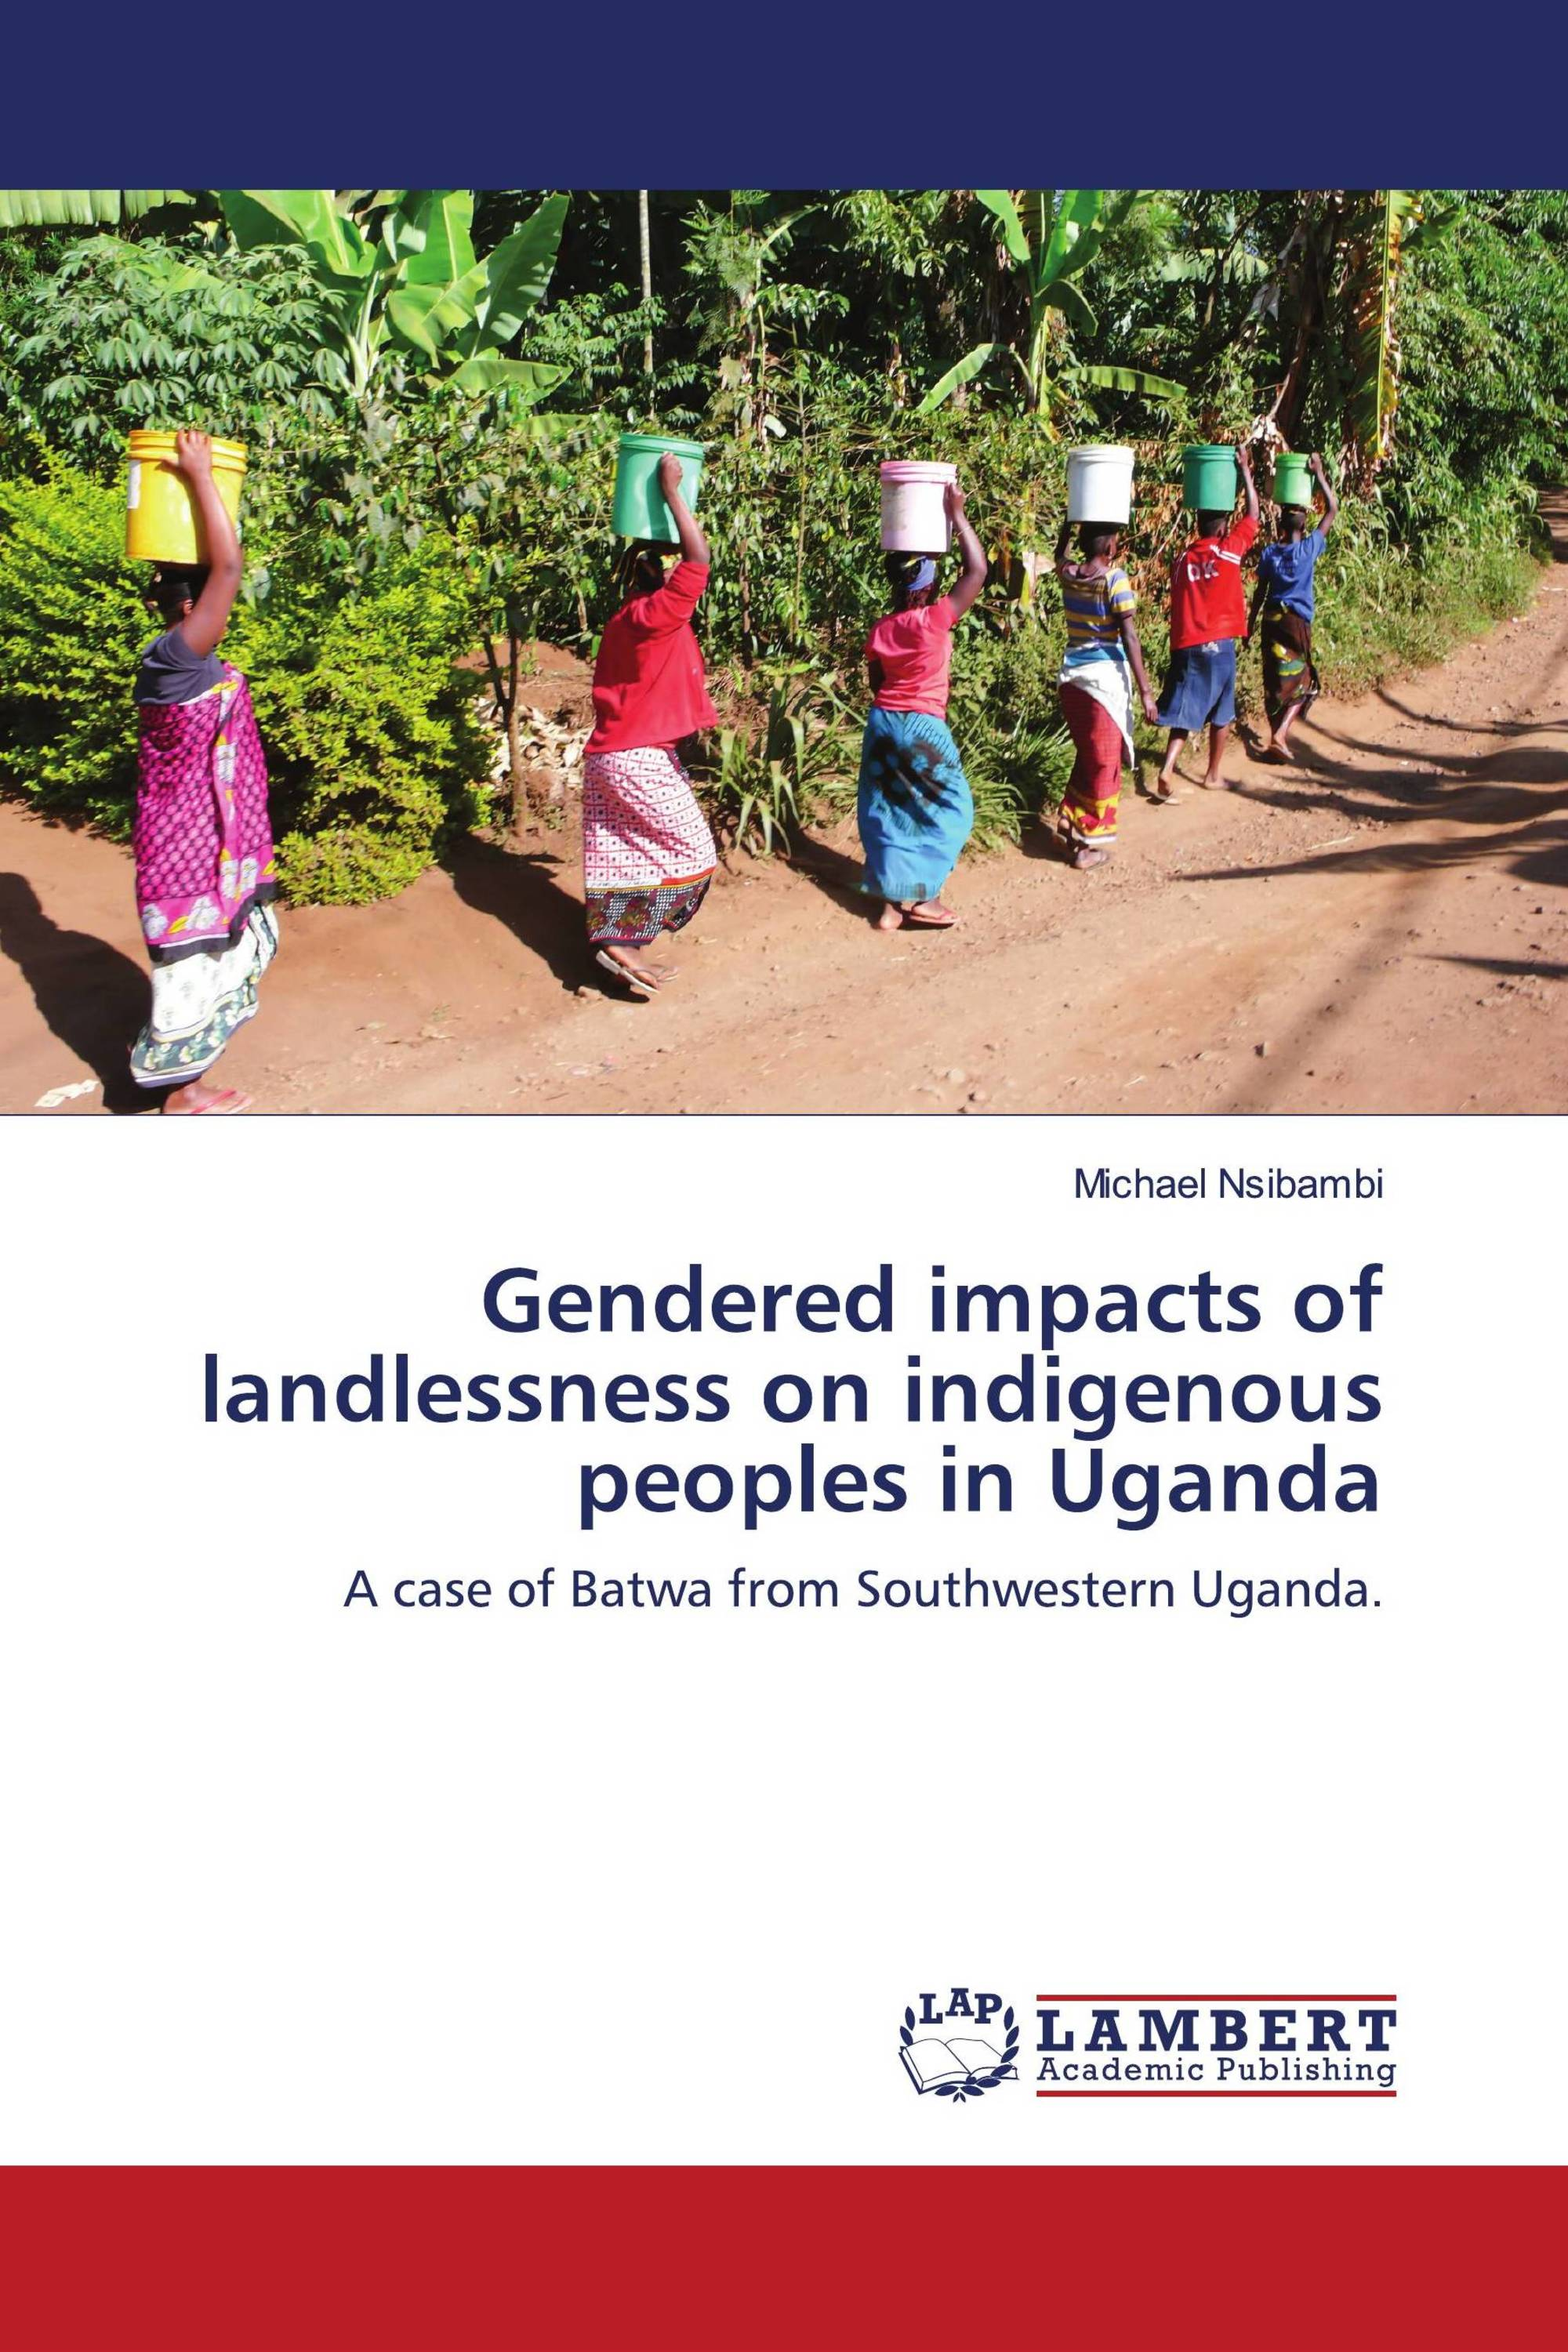 Gendered impacts of landlessness on indigenous peoples in Uganda